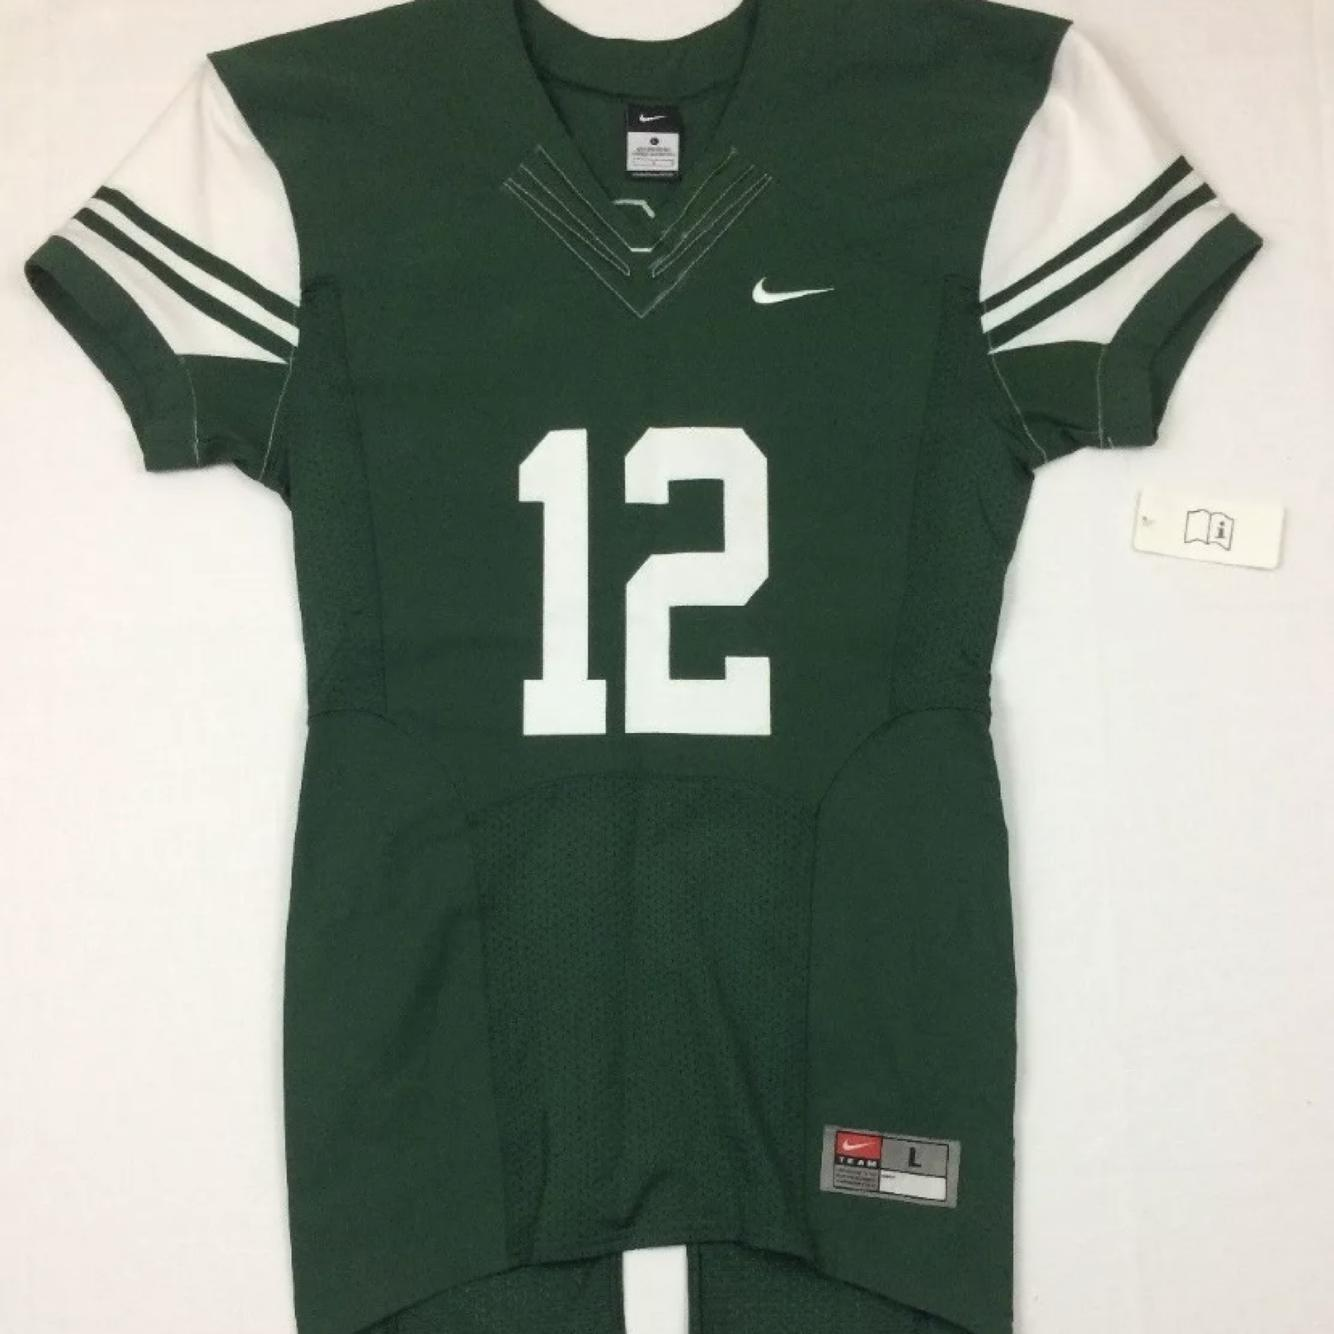 Descendencia haz Barrio  Nike On-field Sewn On Authentic Sample Jersey Large nwt game fit | Football  Apparel